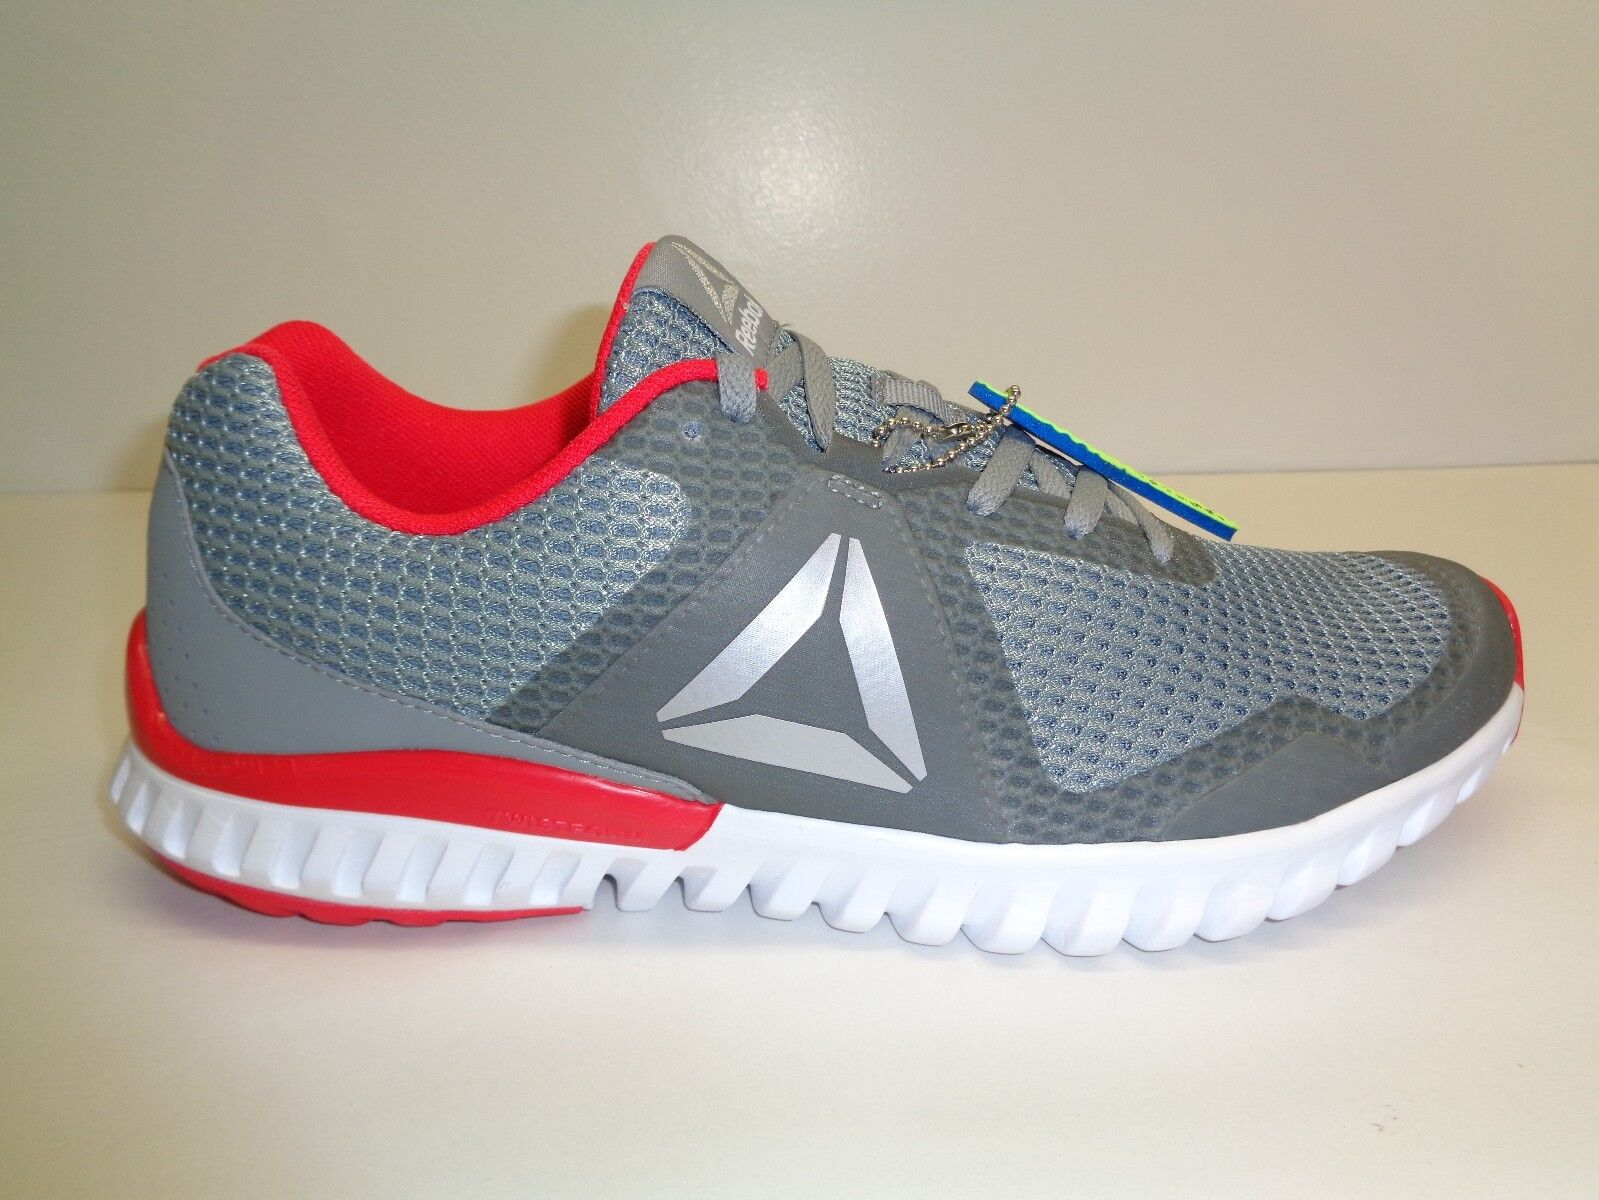 Reebok Size 11 TWISTFORM BLAZE 3.0 MTM Grey Red Running Sneakers New Mens Shoes